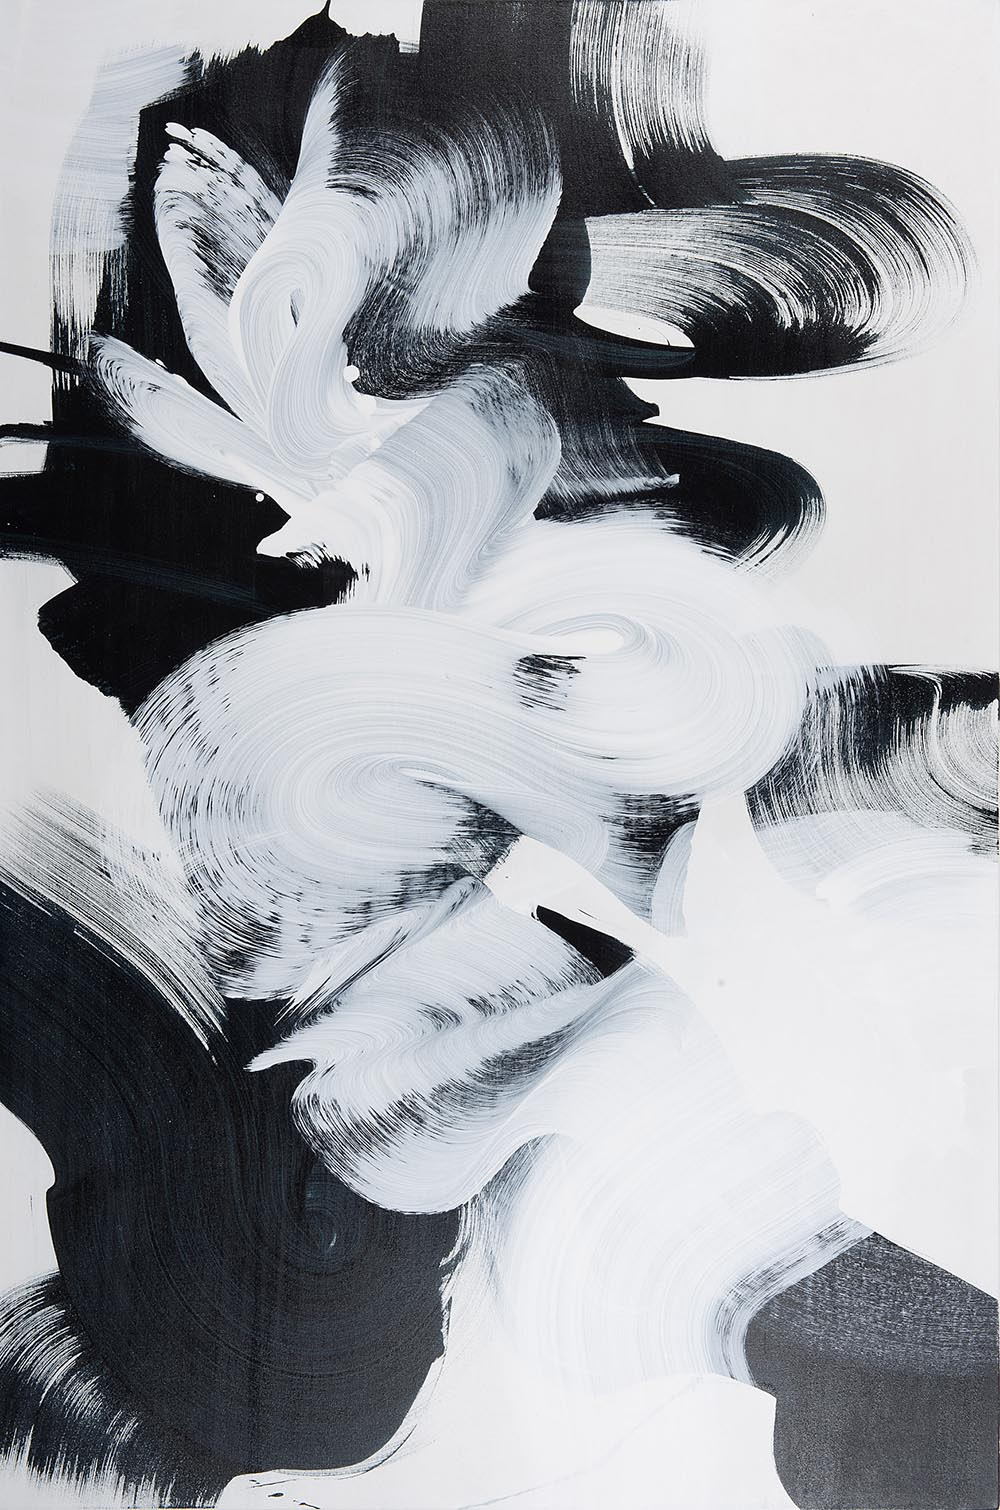 Andrea McCuaig Prelude to zen V 2014 Acrylic on canvas 150 x 100cm